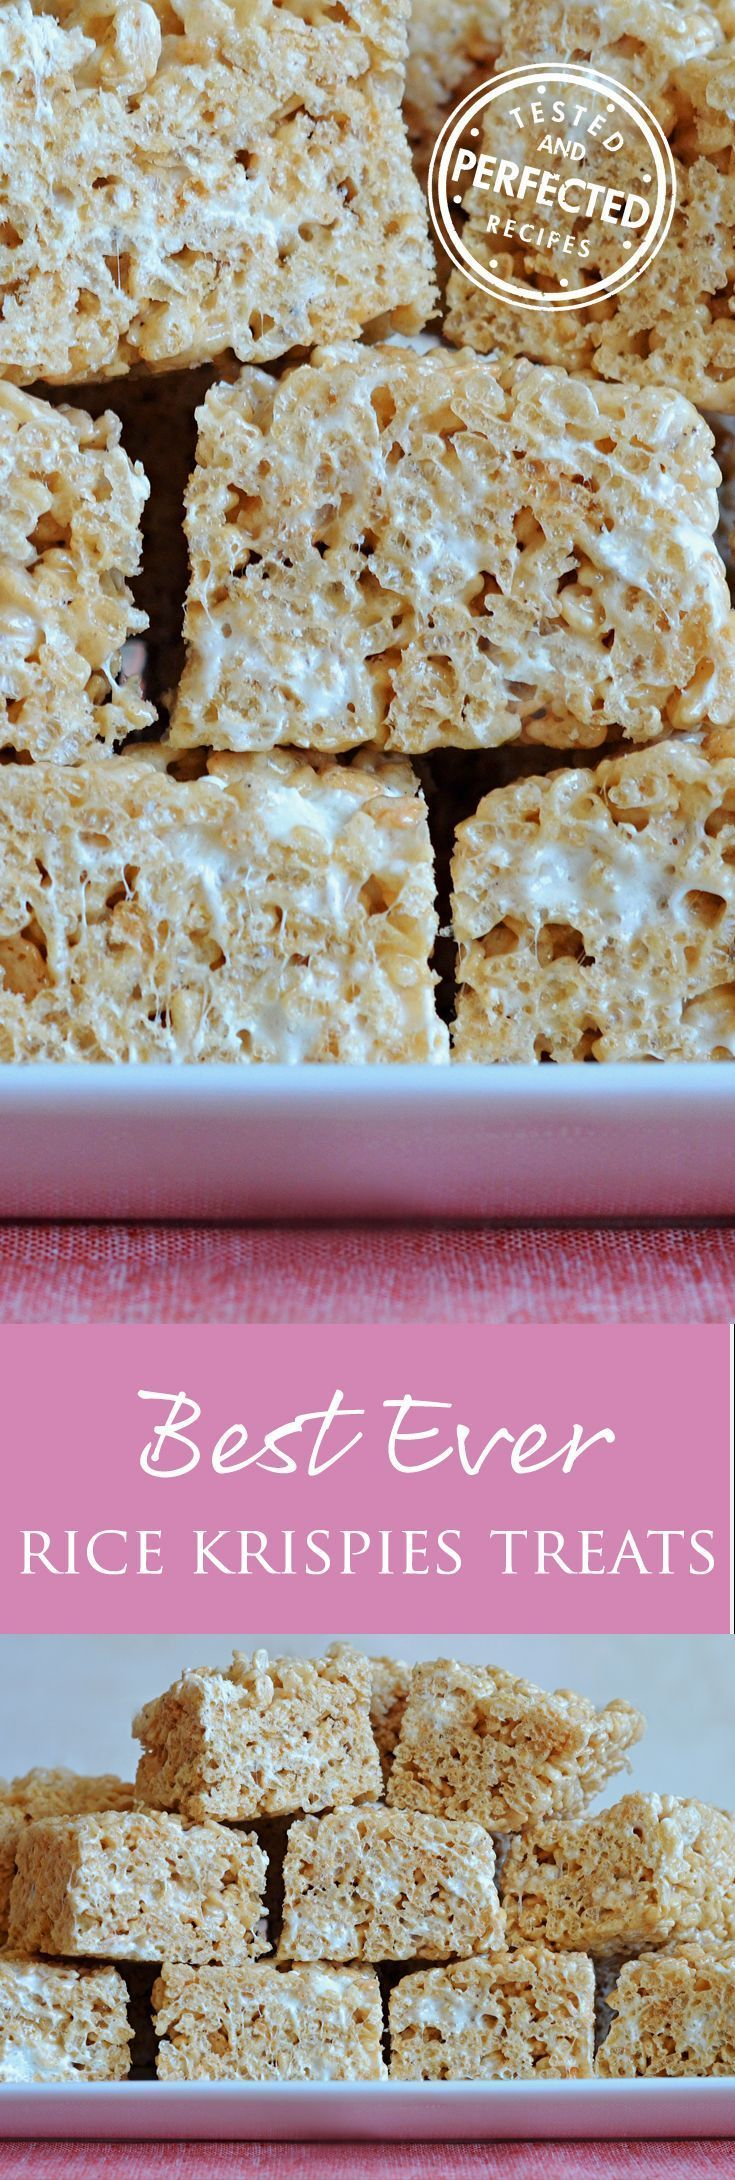 Best Ever Rice Krispies Treats